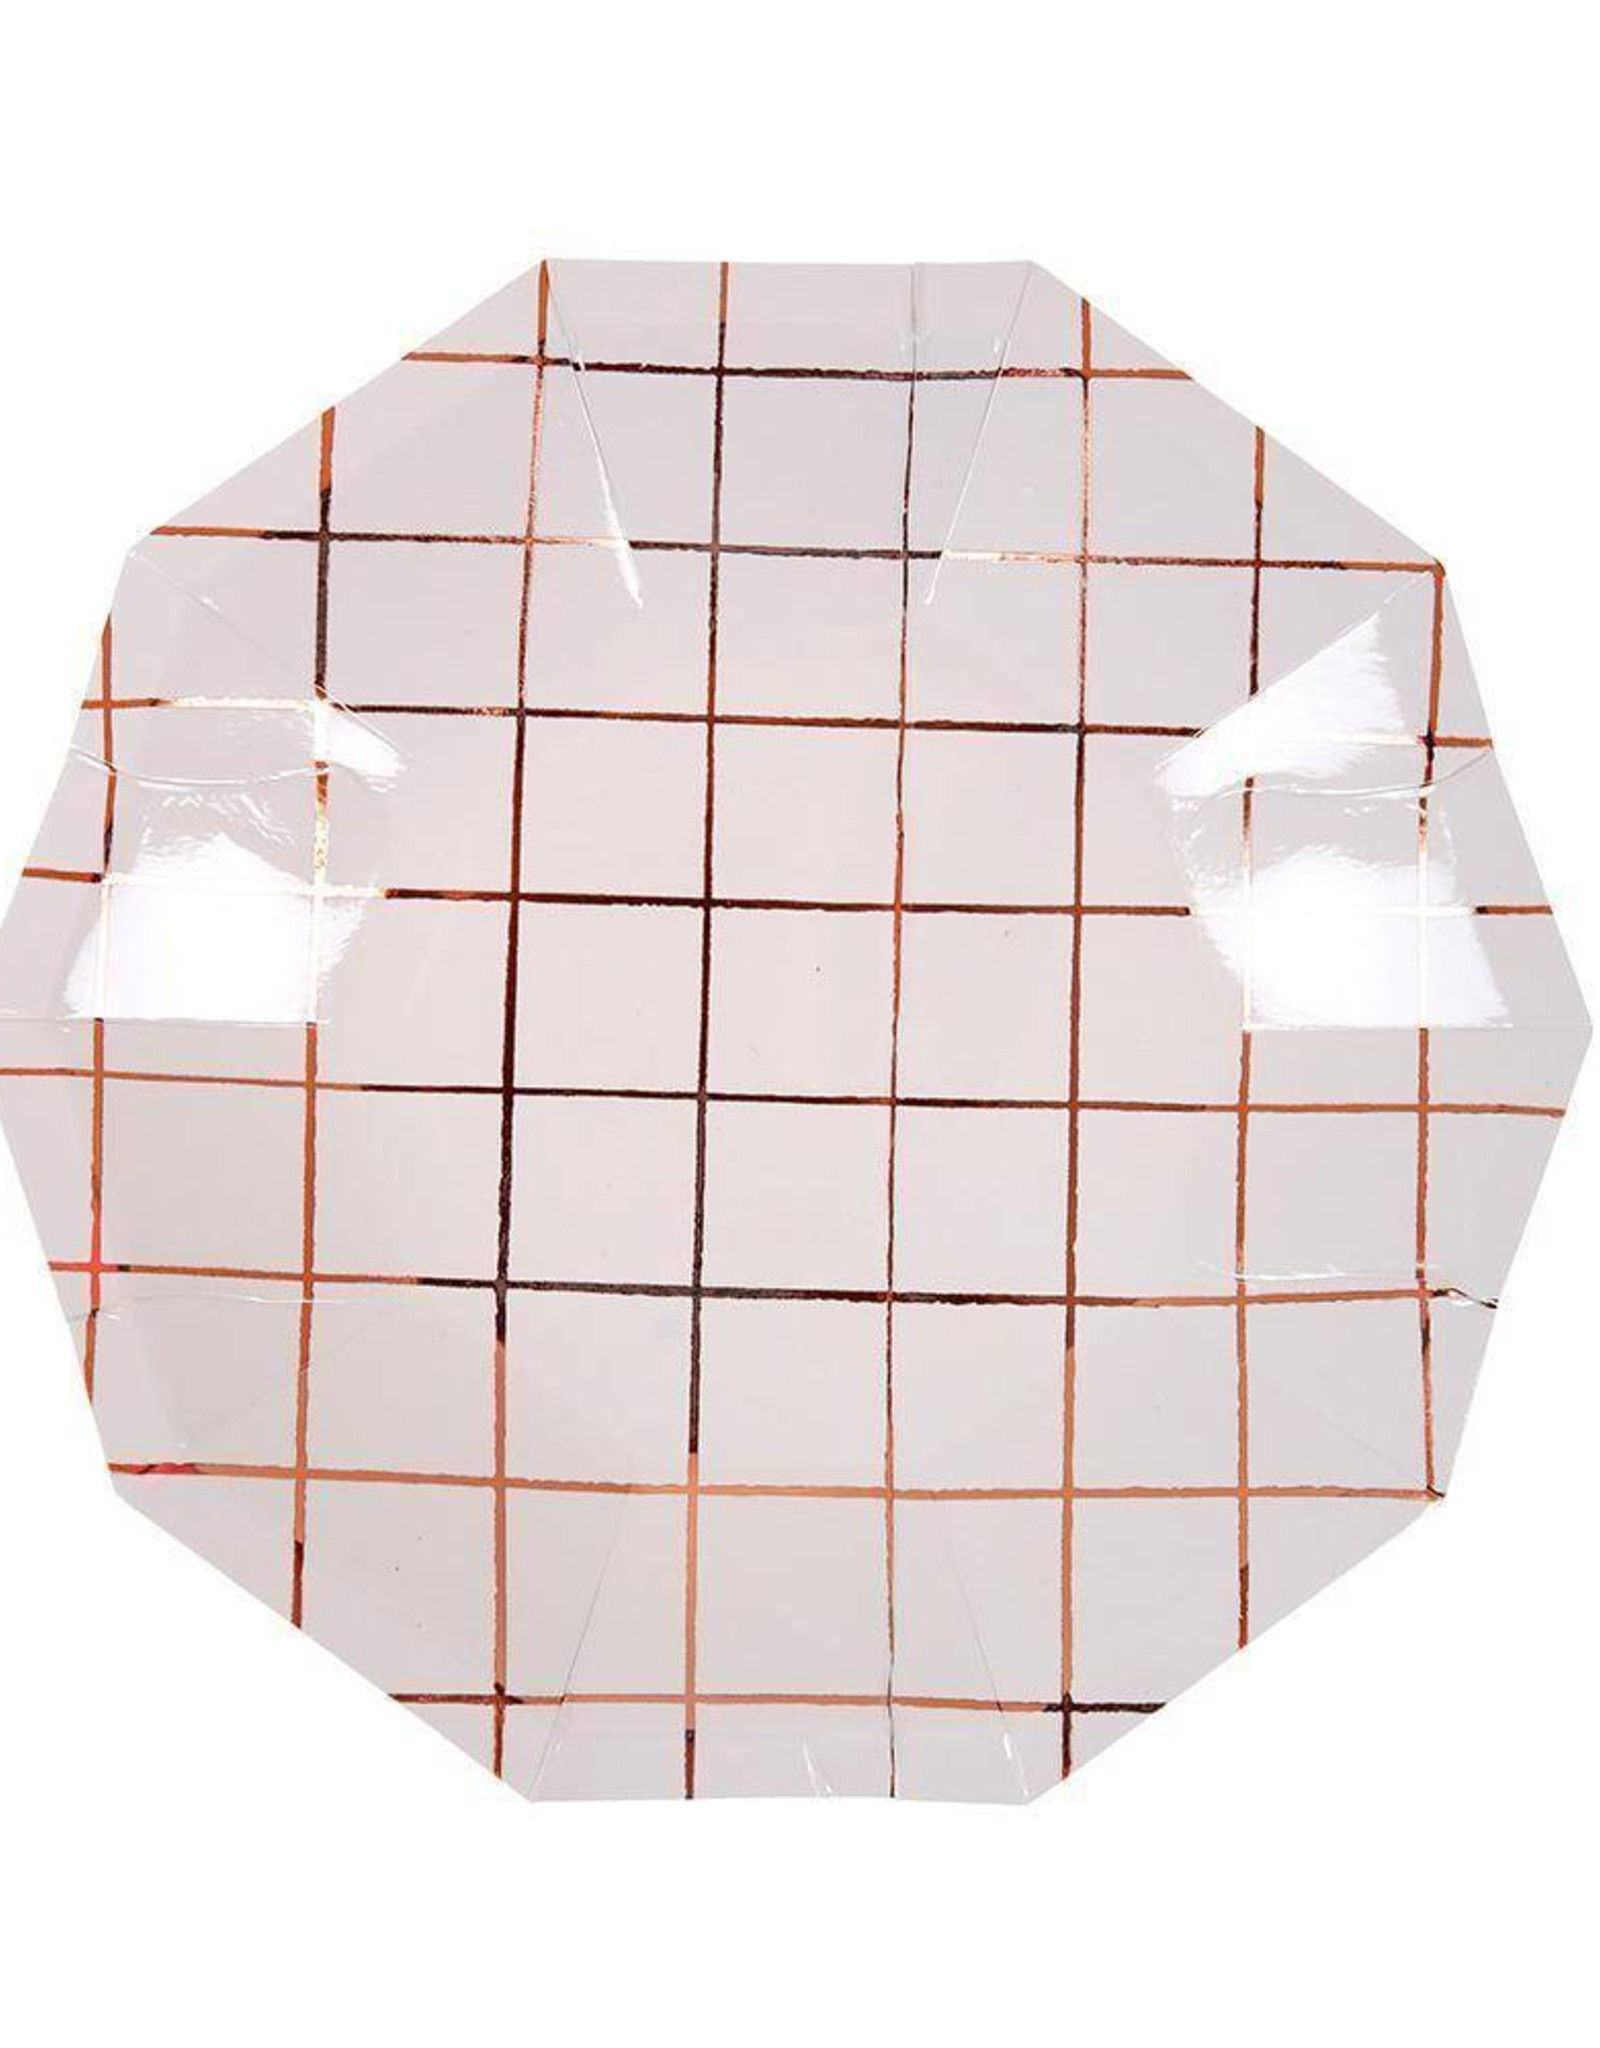 Meri Meri rose gold grid plates small